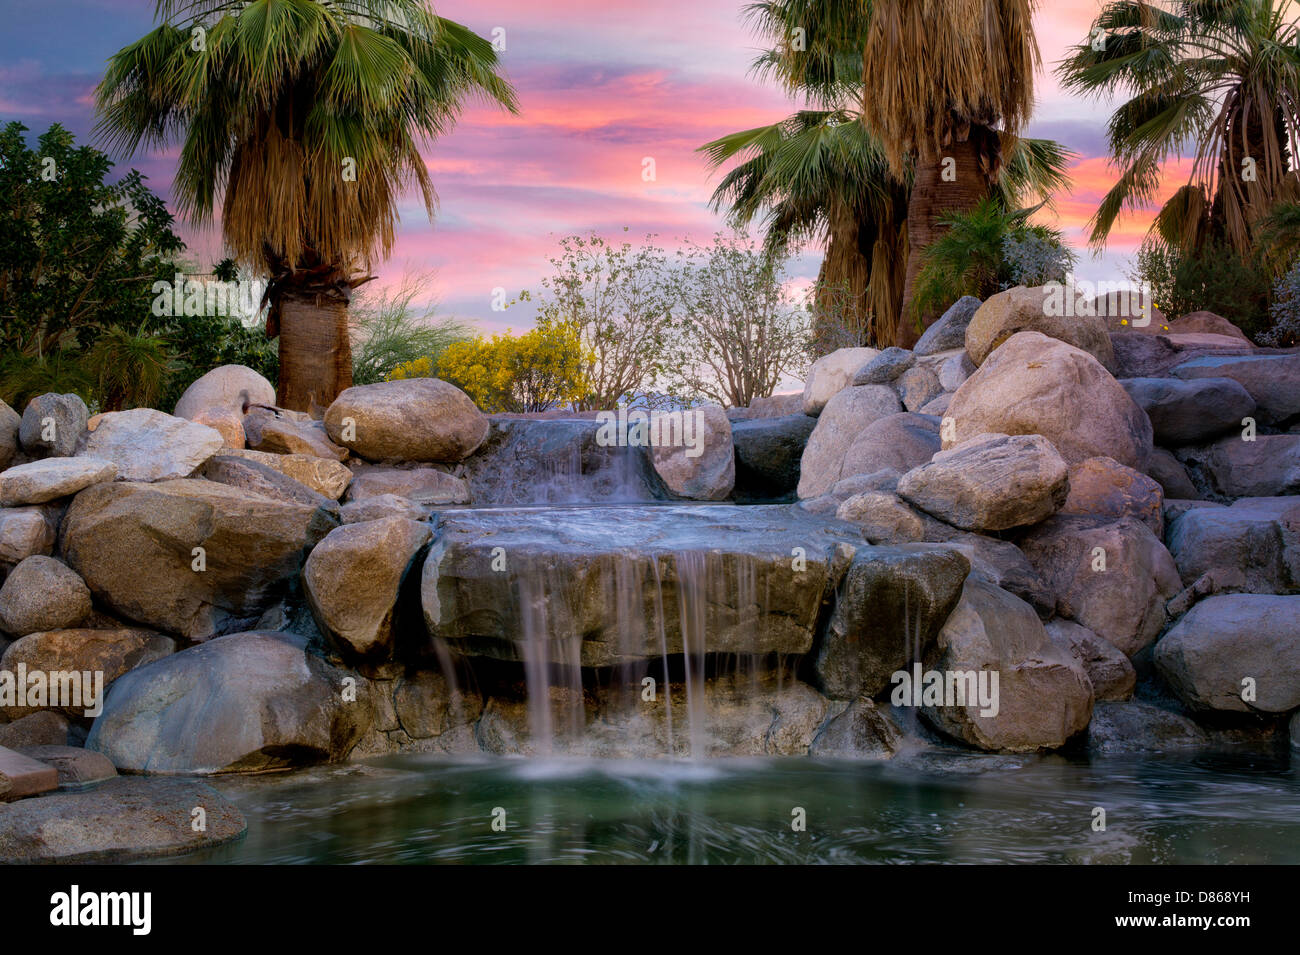 Cascades de Faye Sarkowsky Jardin de sculptures. Palm Desert, Californie Photo Stock